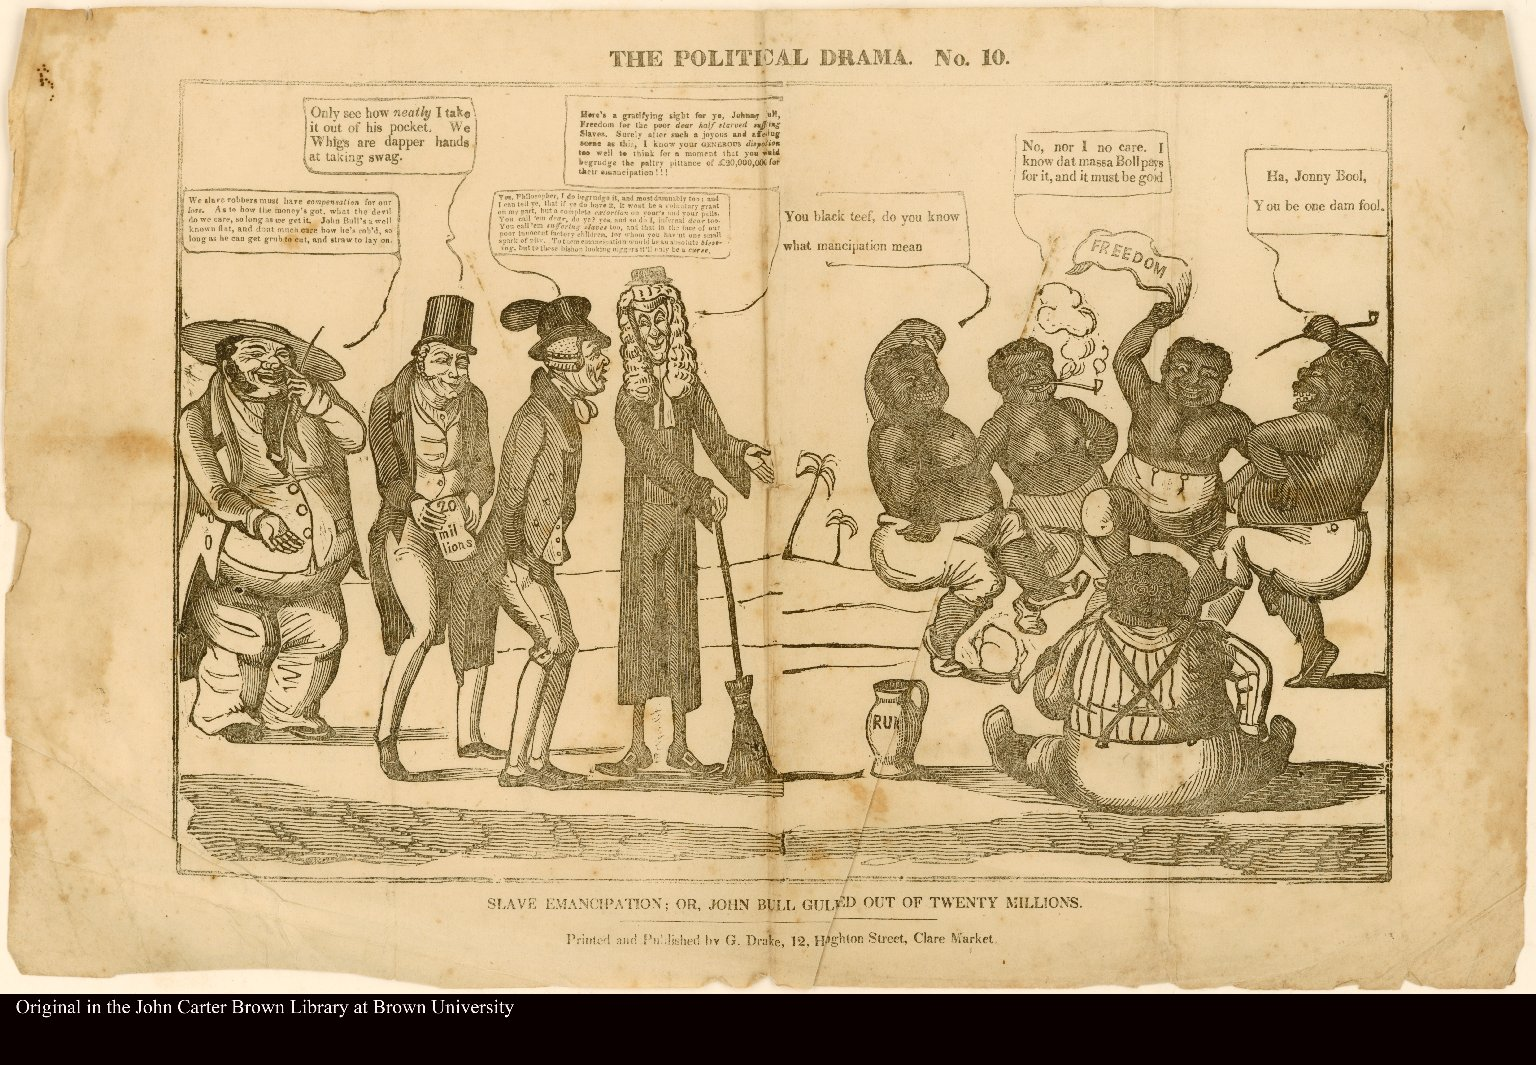 THE POLITICAL DRAMA. No. 10. SLAVE EMANCIPATION; OR, JOHN BULL GULLED OUT OF TWENTY MILLIONS.